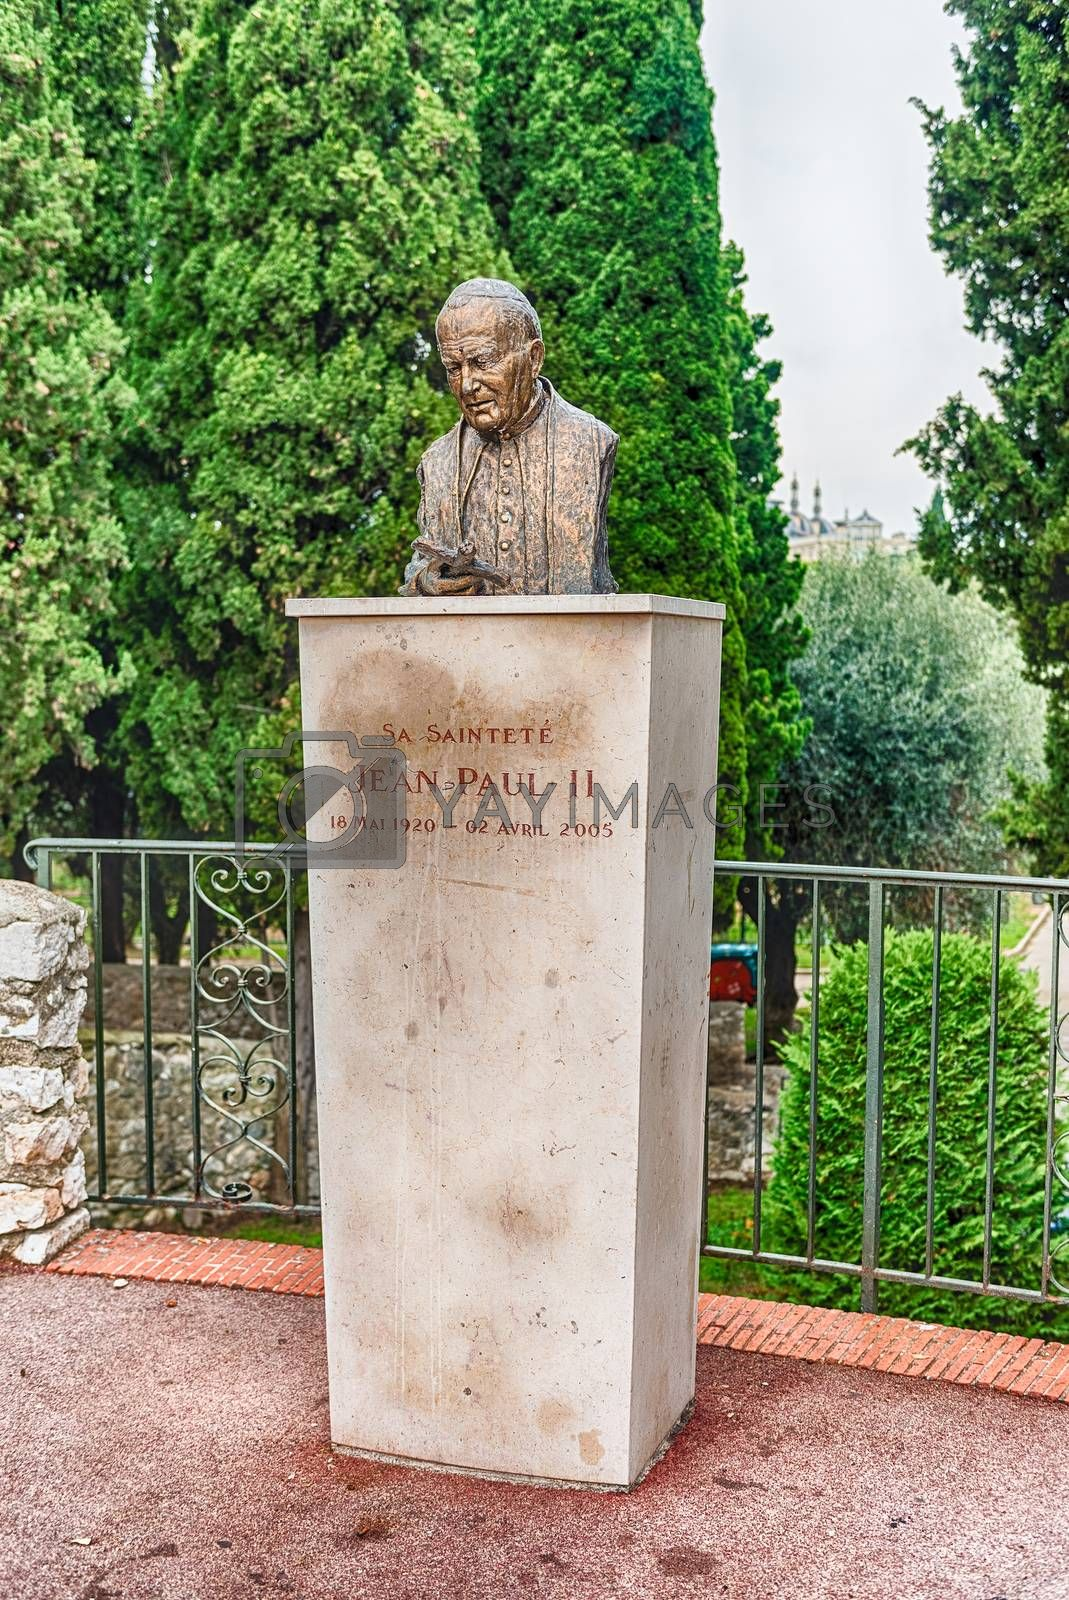 Bronze bust of Pope John Paul II, located in the Cimiez neighborhood in Nice, Cote d'Azur, France